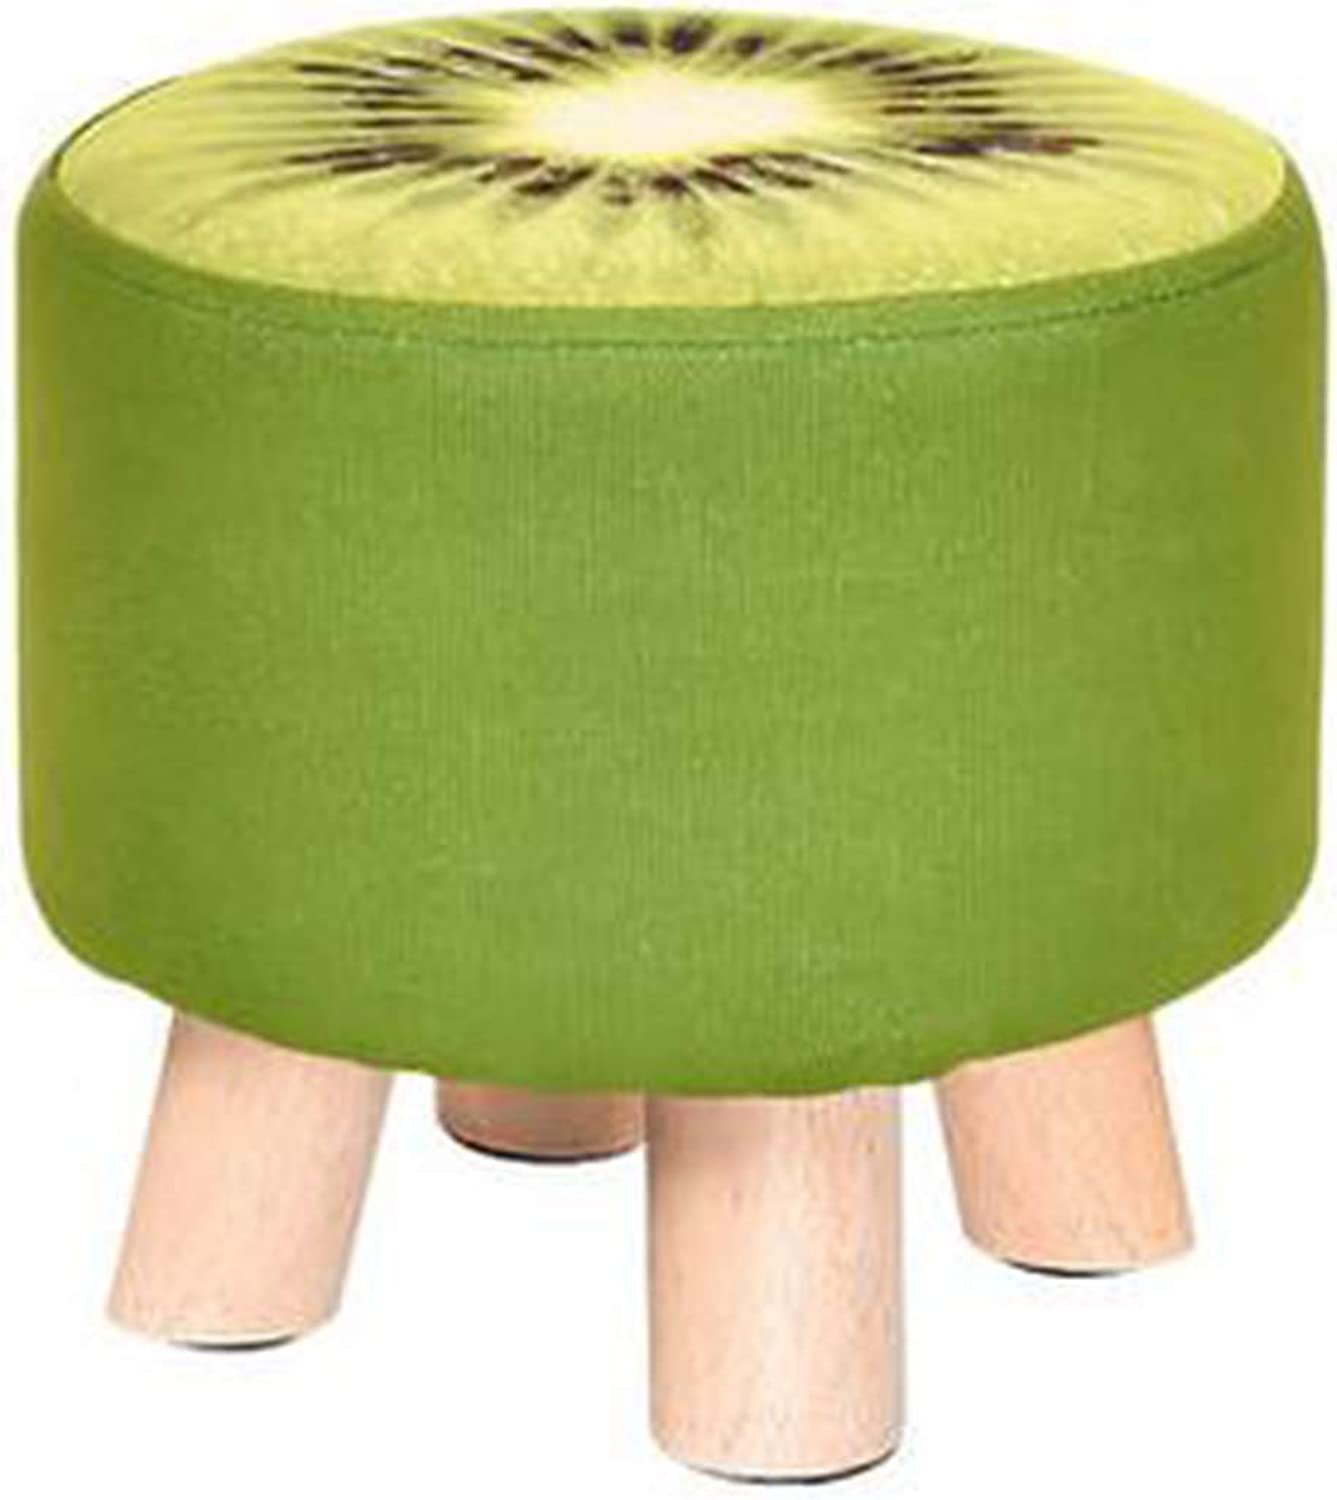 Creative Round Wooden Footstool Fabric Foot Rest Stool Adult Kids Applicable, Green, Kiwi